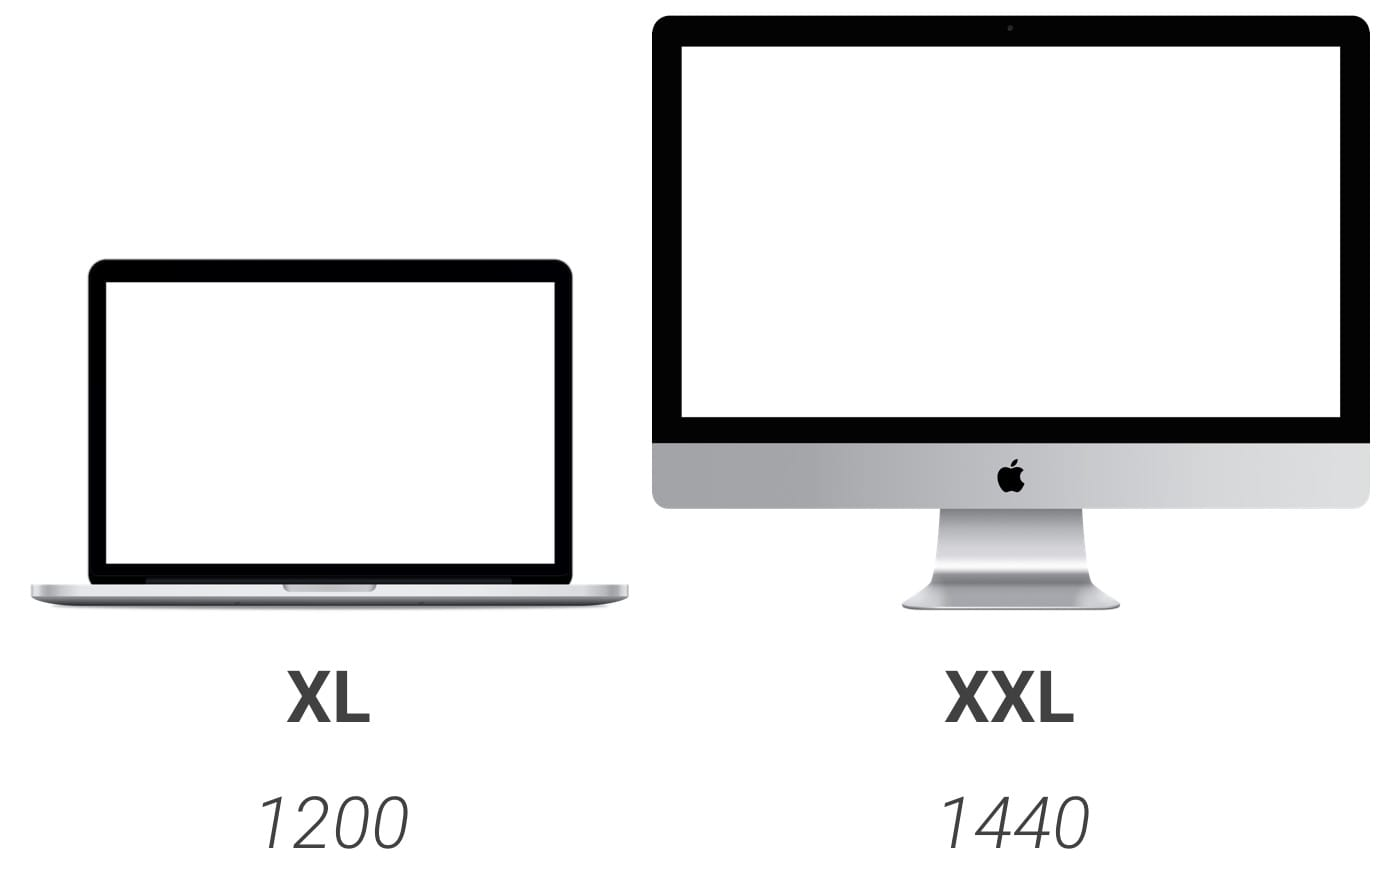 Breakpoints: XL and XXL